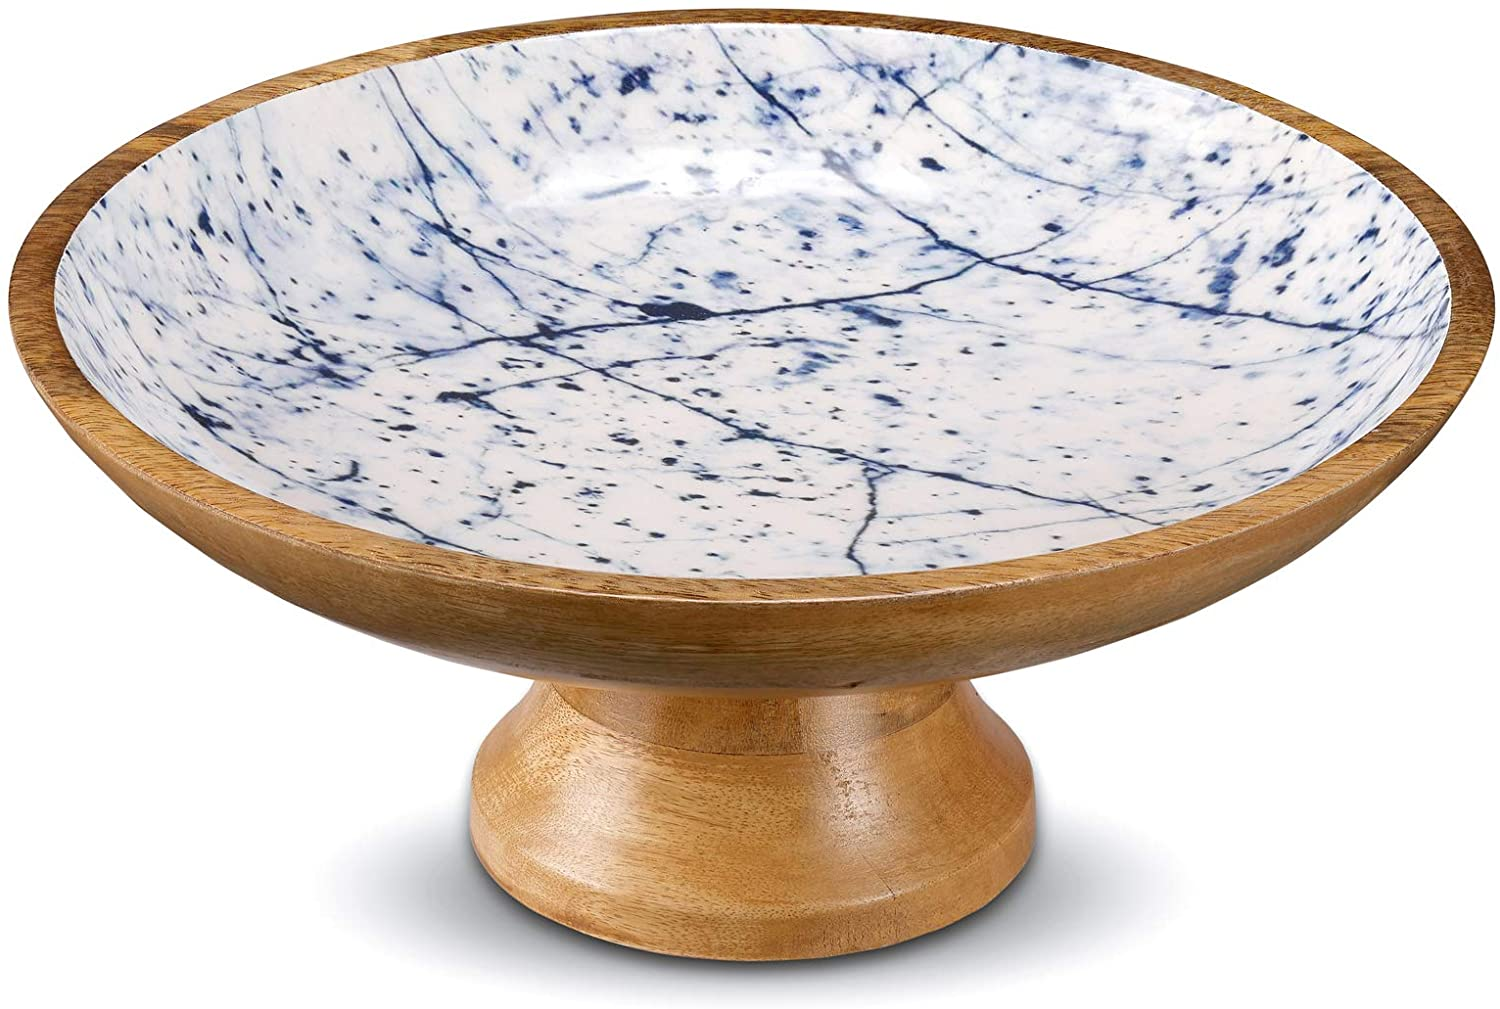 Wooden Fruit Bowl or Decorative Fruit Holder for Kitchen Counter or Centerpiece Table Decor, 12-inch Large Serving Bowls for Breads or Fruits, Mango Wood. Blue Marble